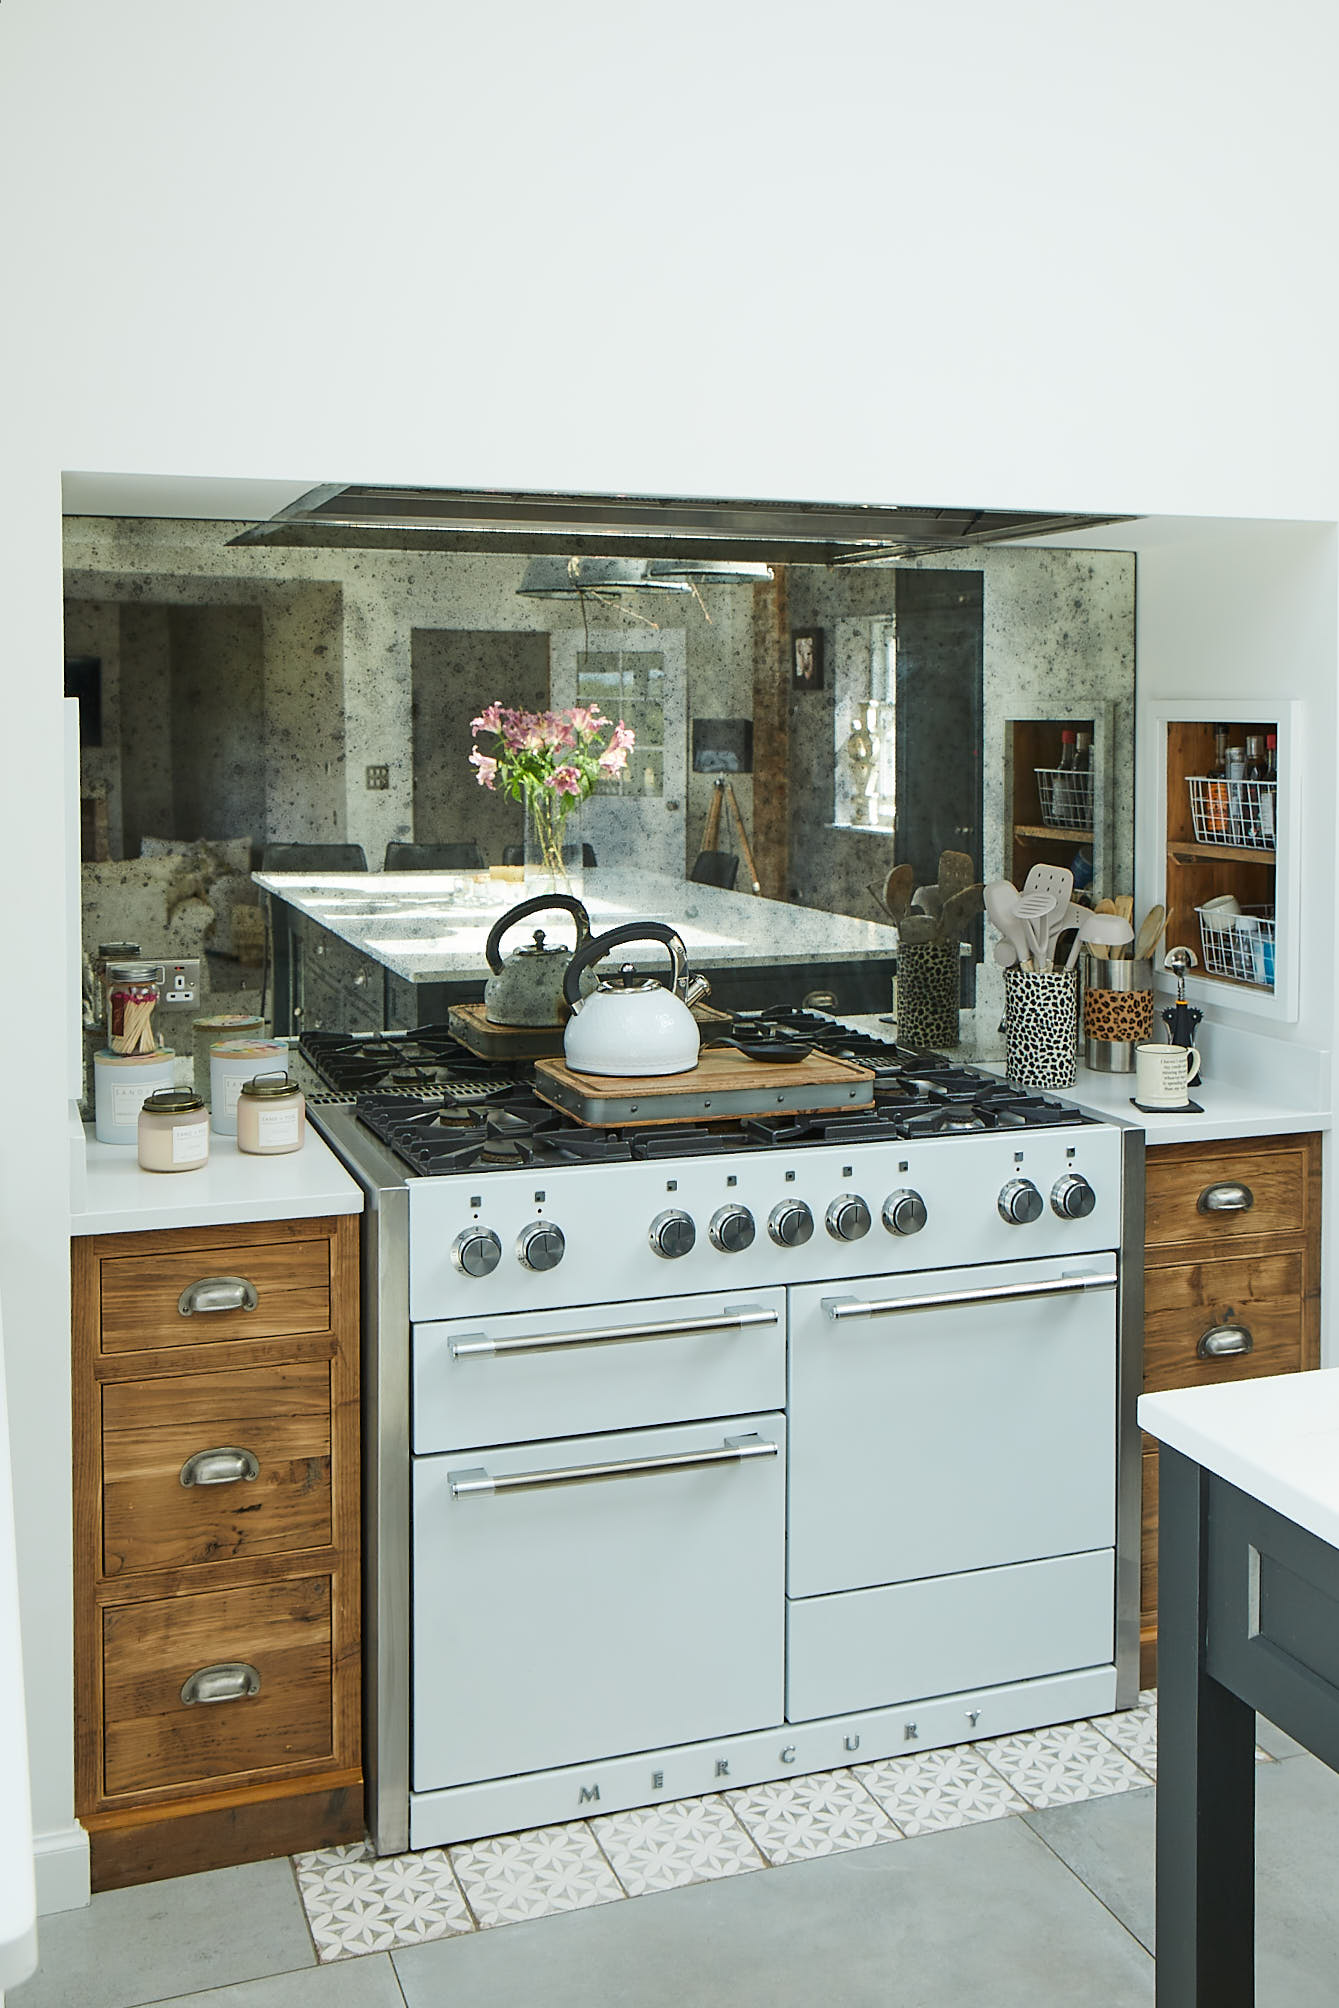 White Mercury cooker with rustic drawers left and right